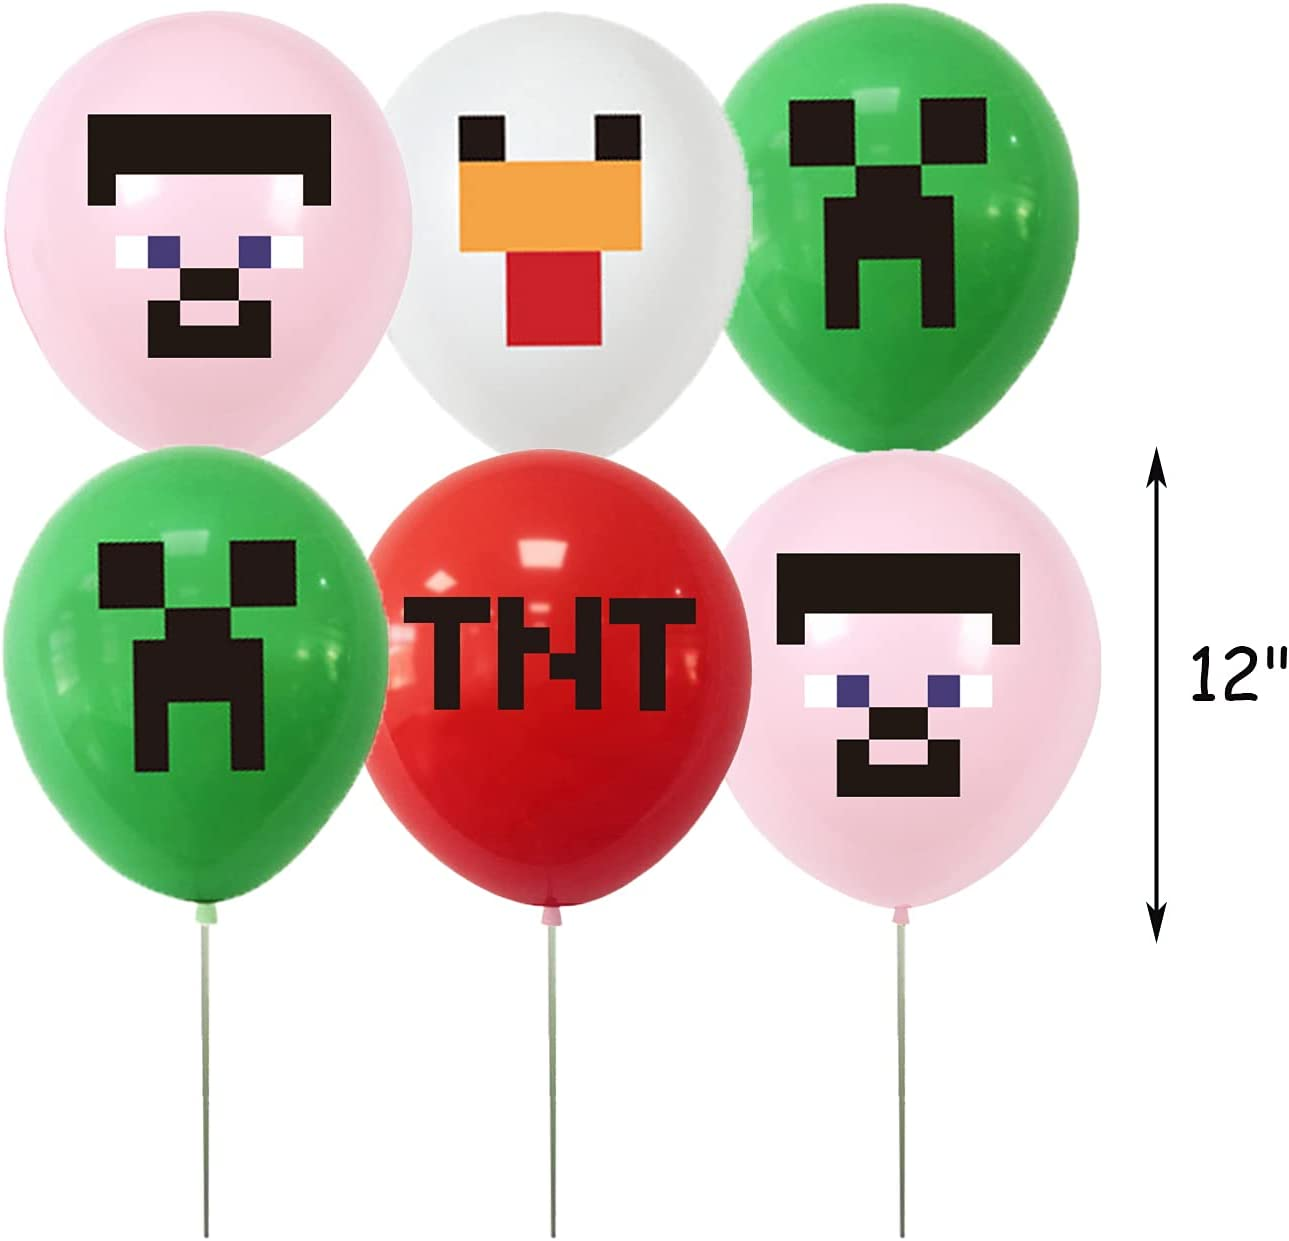 24pcs 12 Pixel Style Game Balloons Pixel Style Game Birthday Party Decorations Miner Crafting Style Decorations Pixel Game Miner craft Theme Party Favors Green